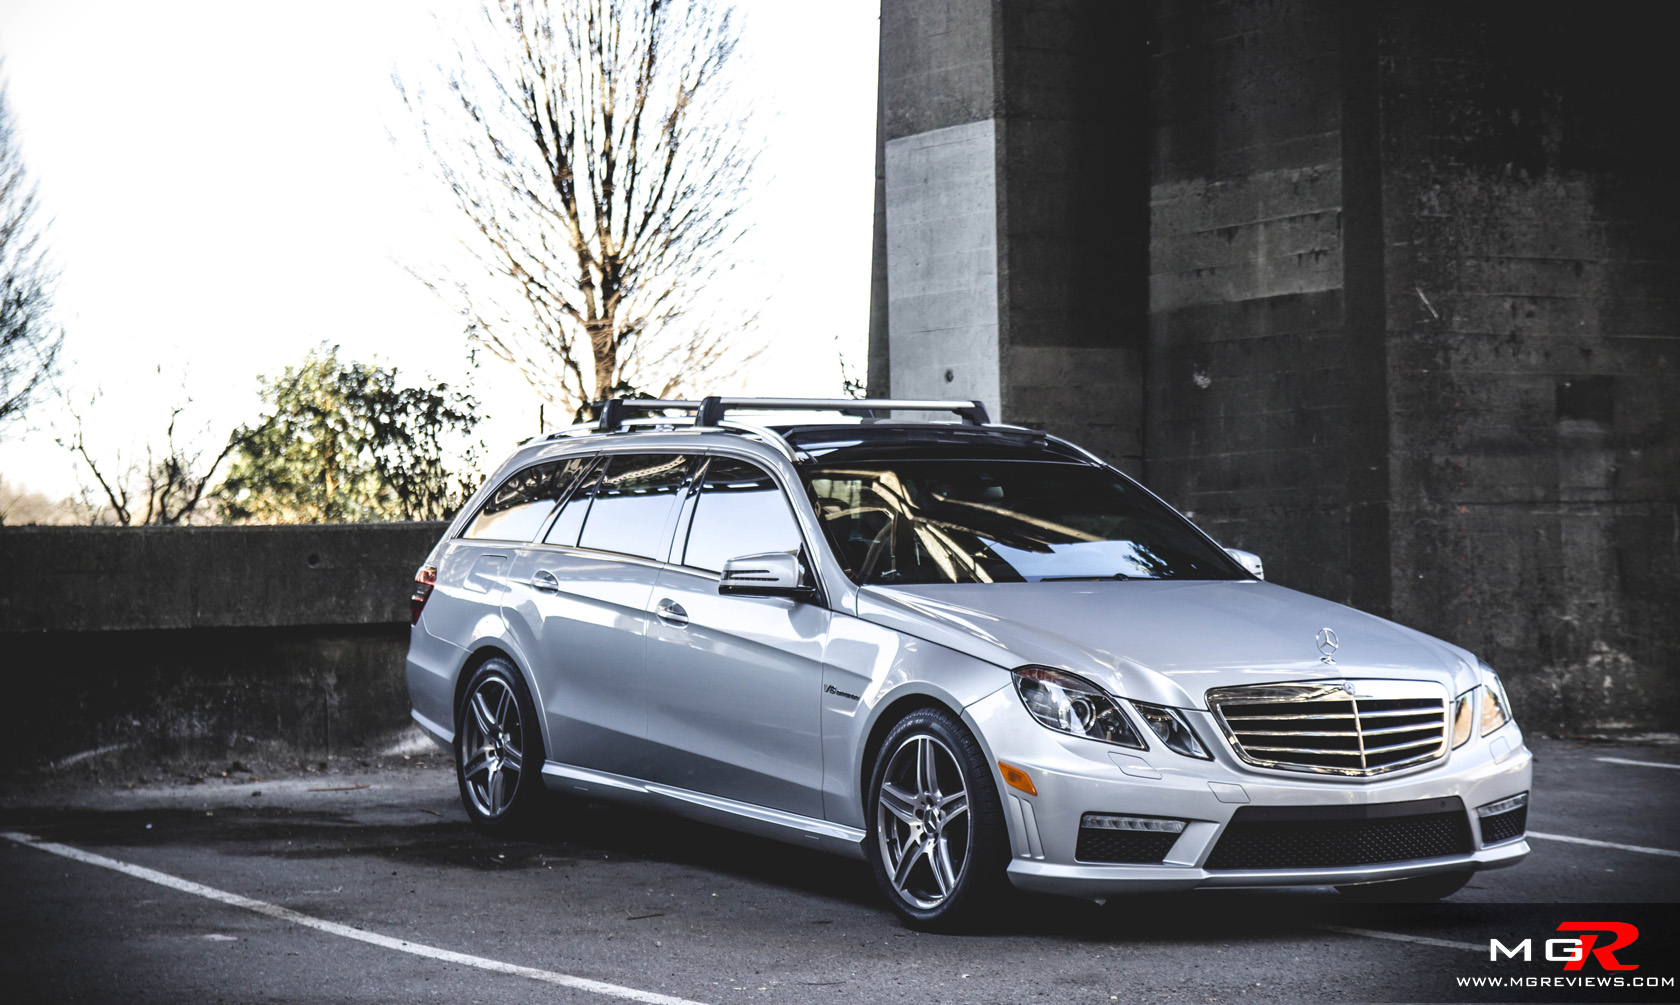 review 2013 mercedes benz e63 amg wagon m g reviews. Black Bedroom Furniture Sets. Home Design Ideas